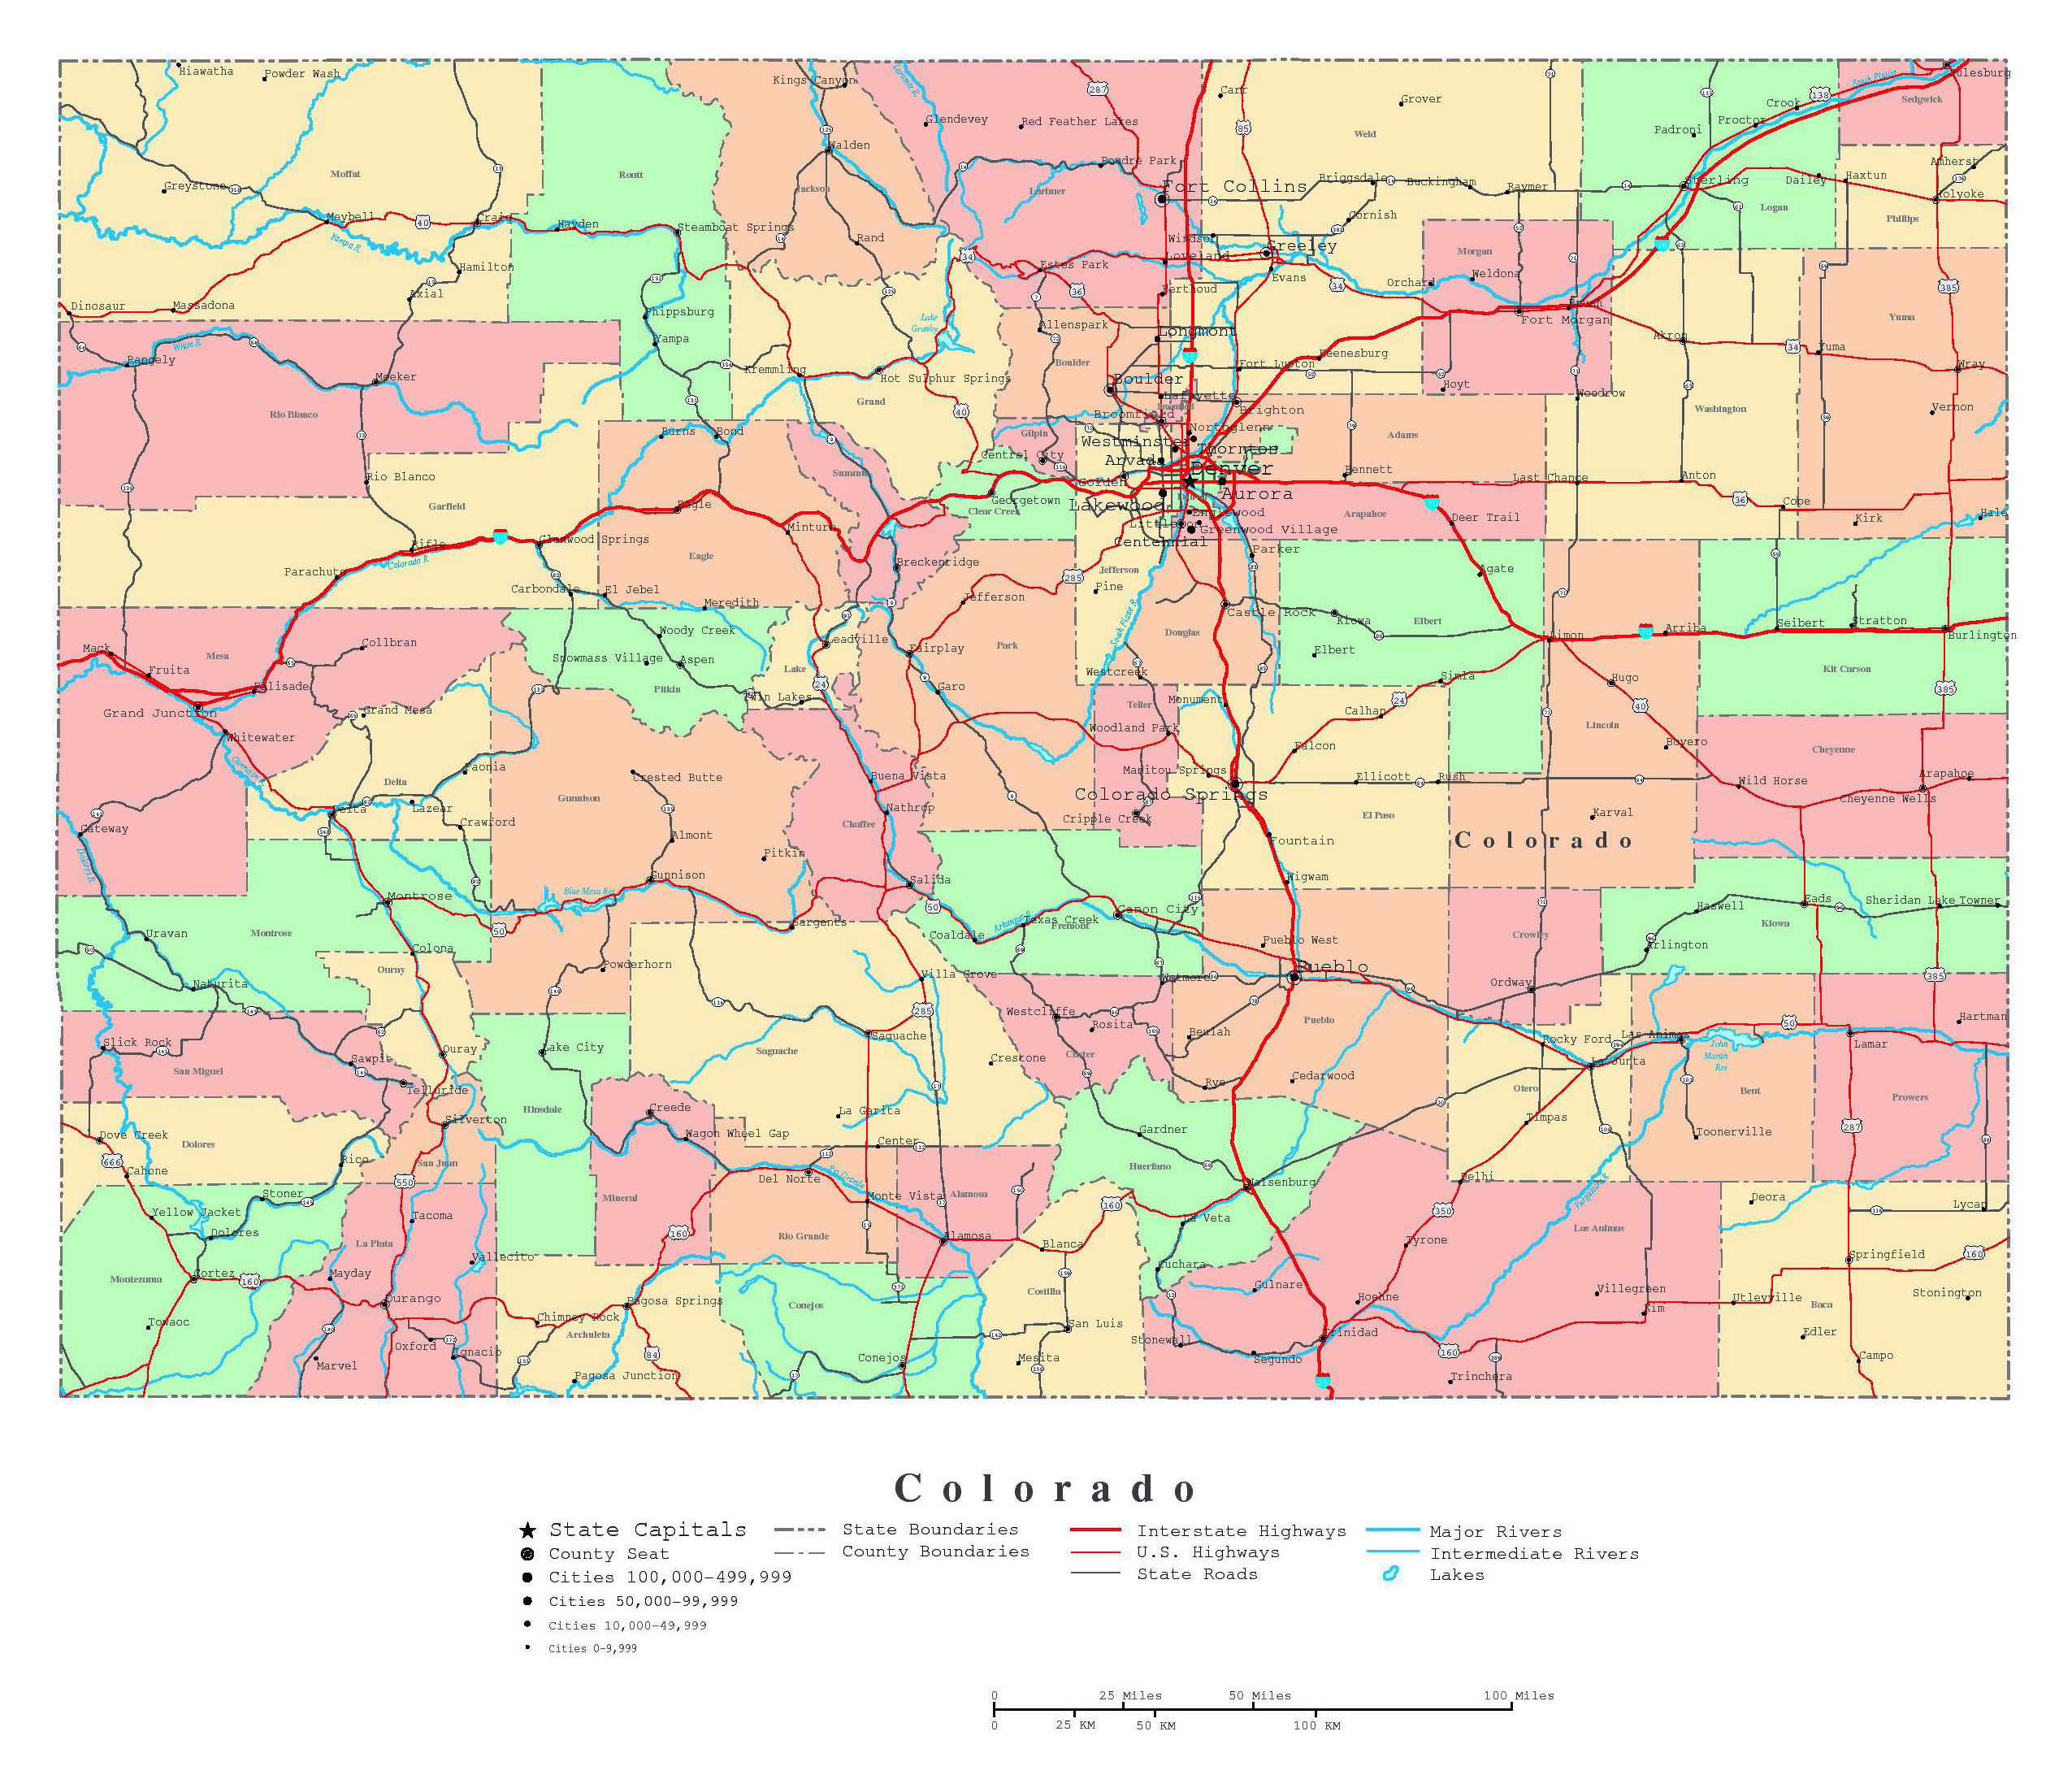 Colorado Counties Road Map USA Colorado Map Stock Images - Map of us rt 50